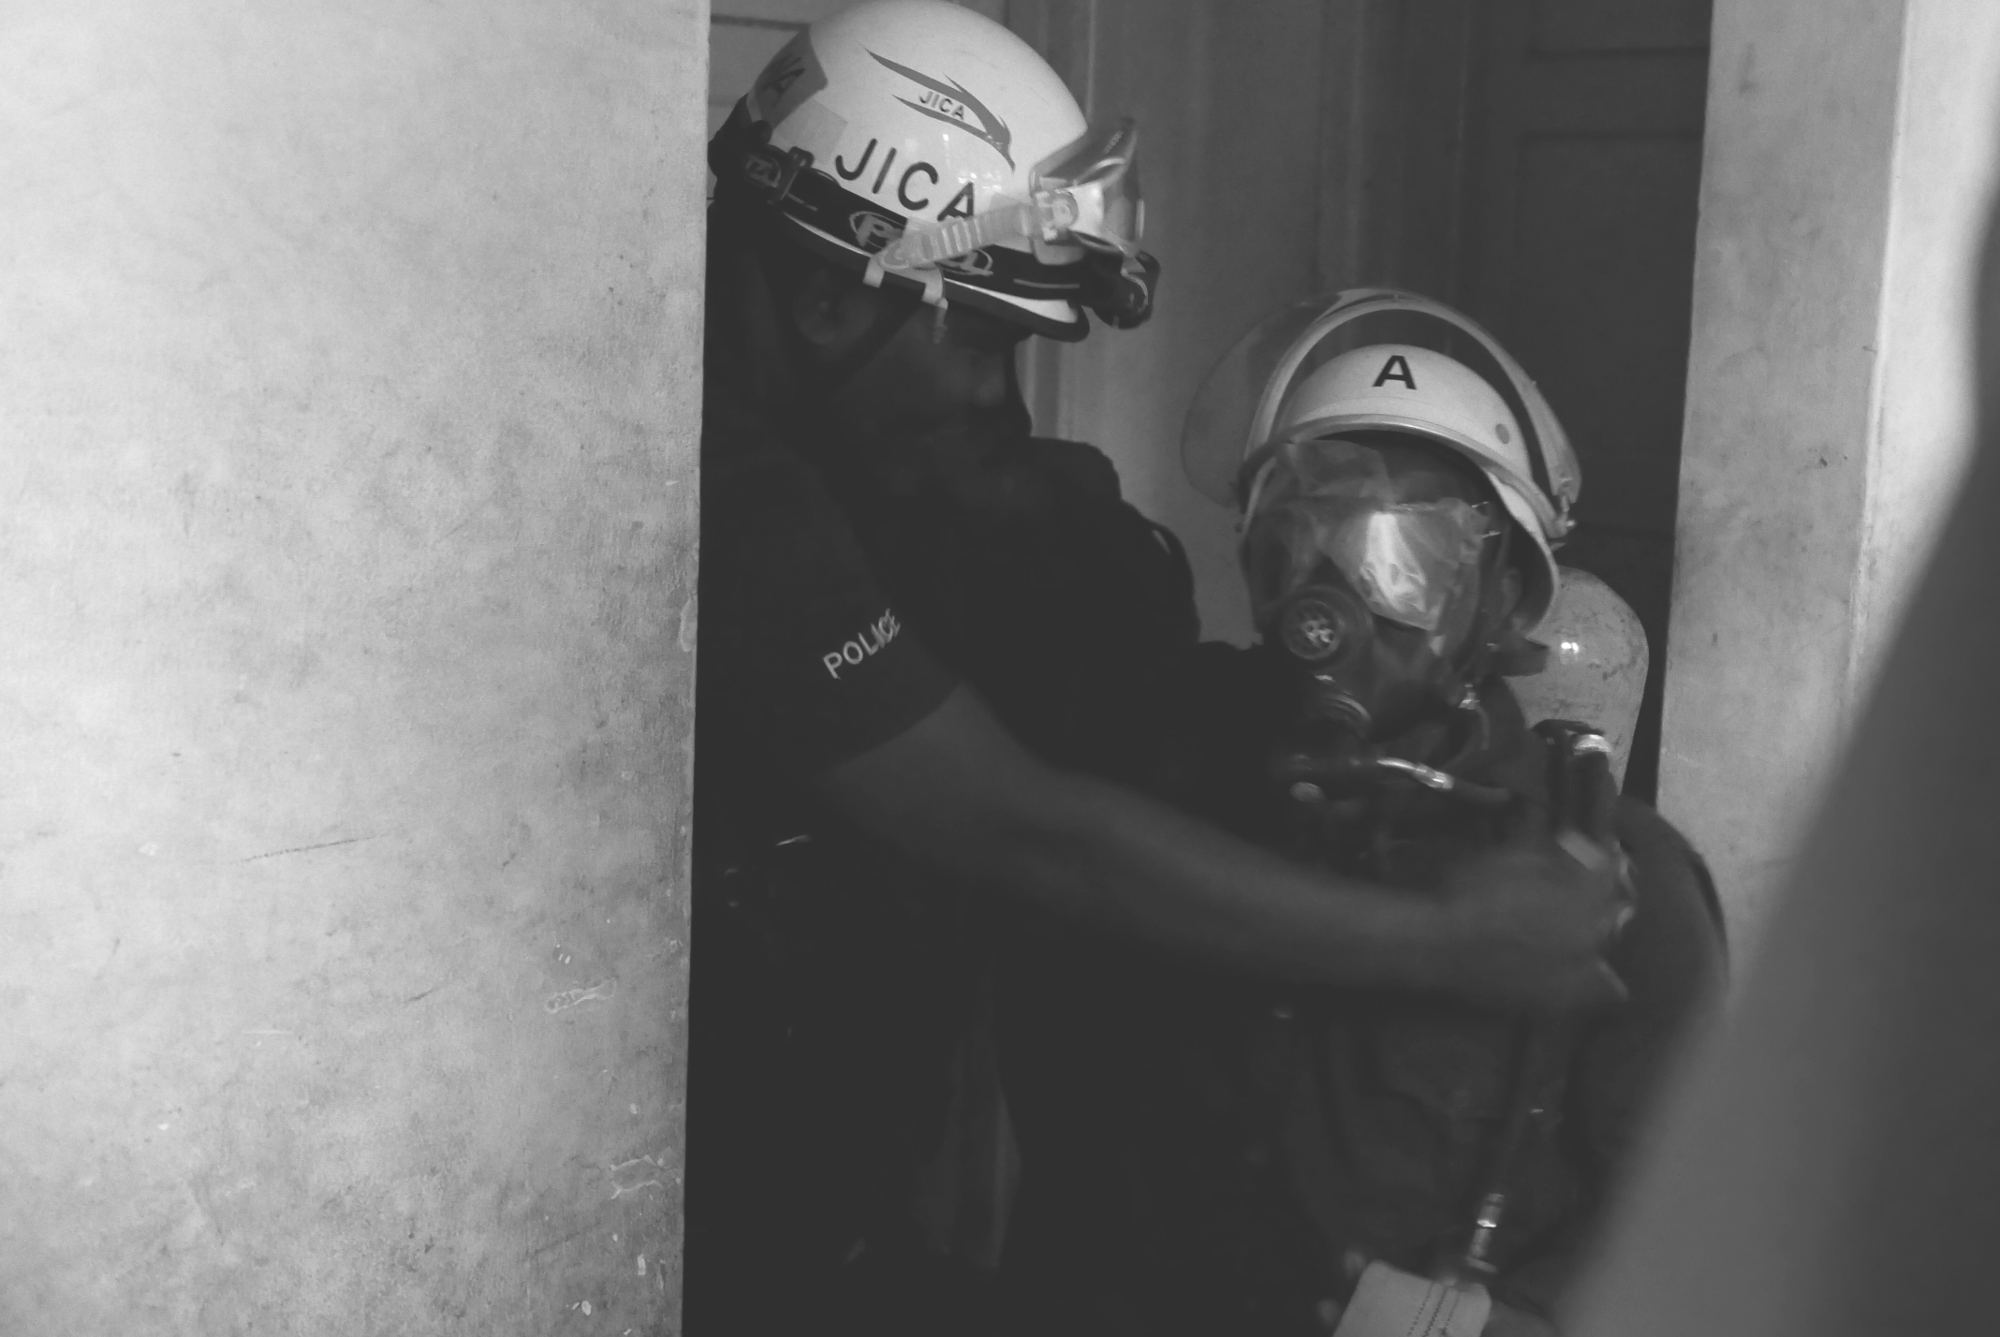 Instructing blindfolded firefighter